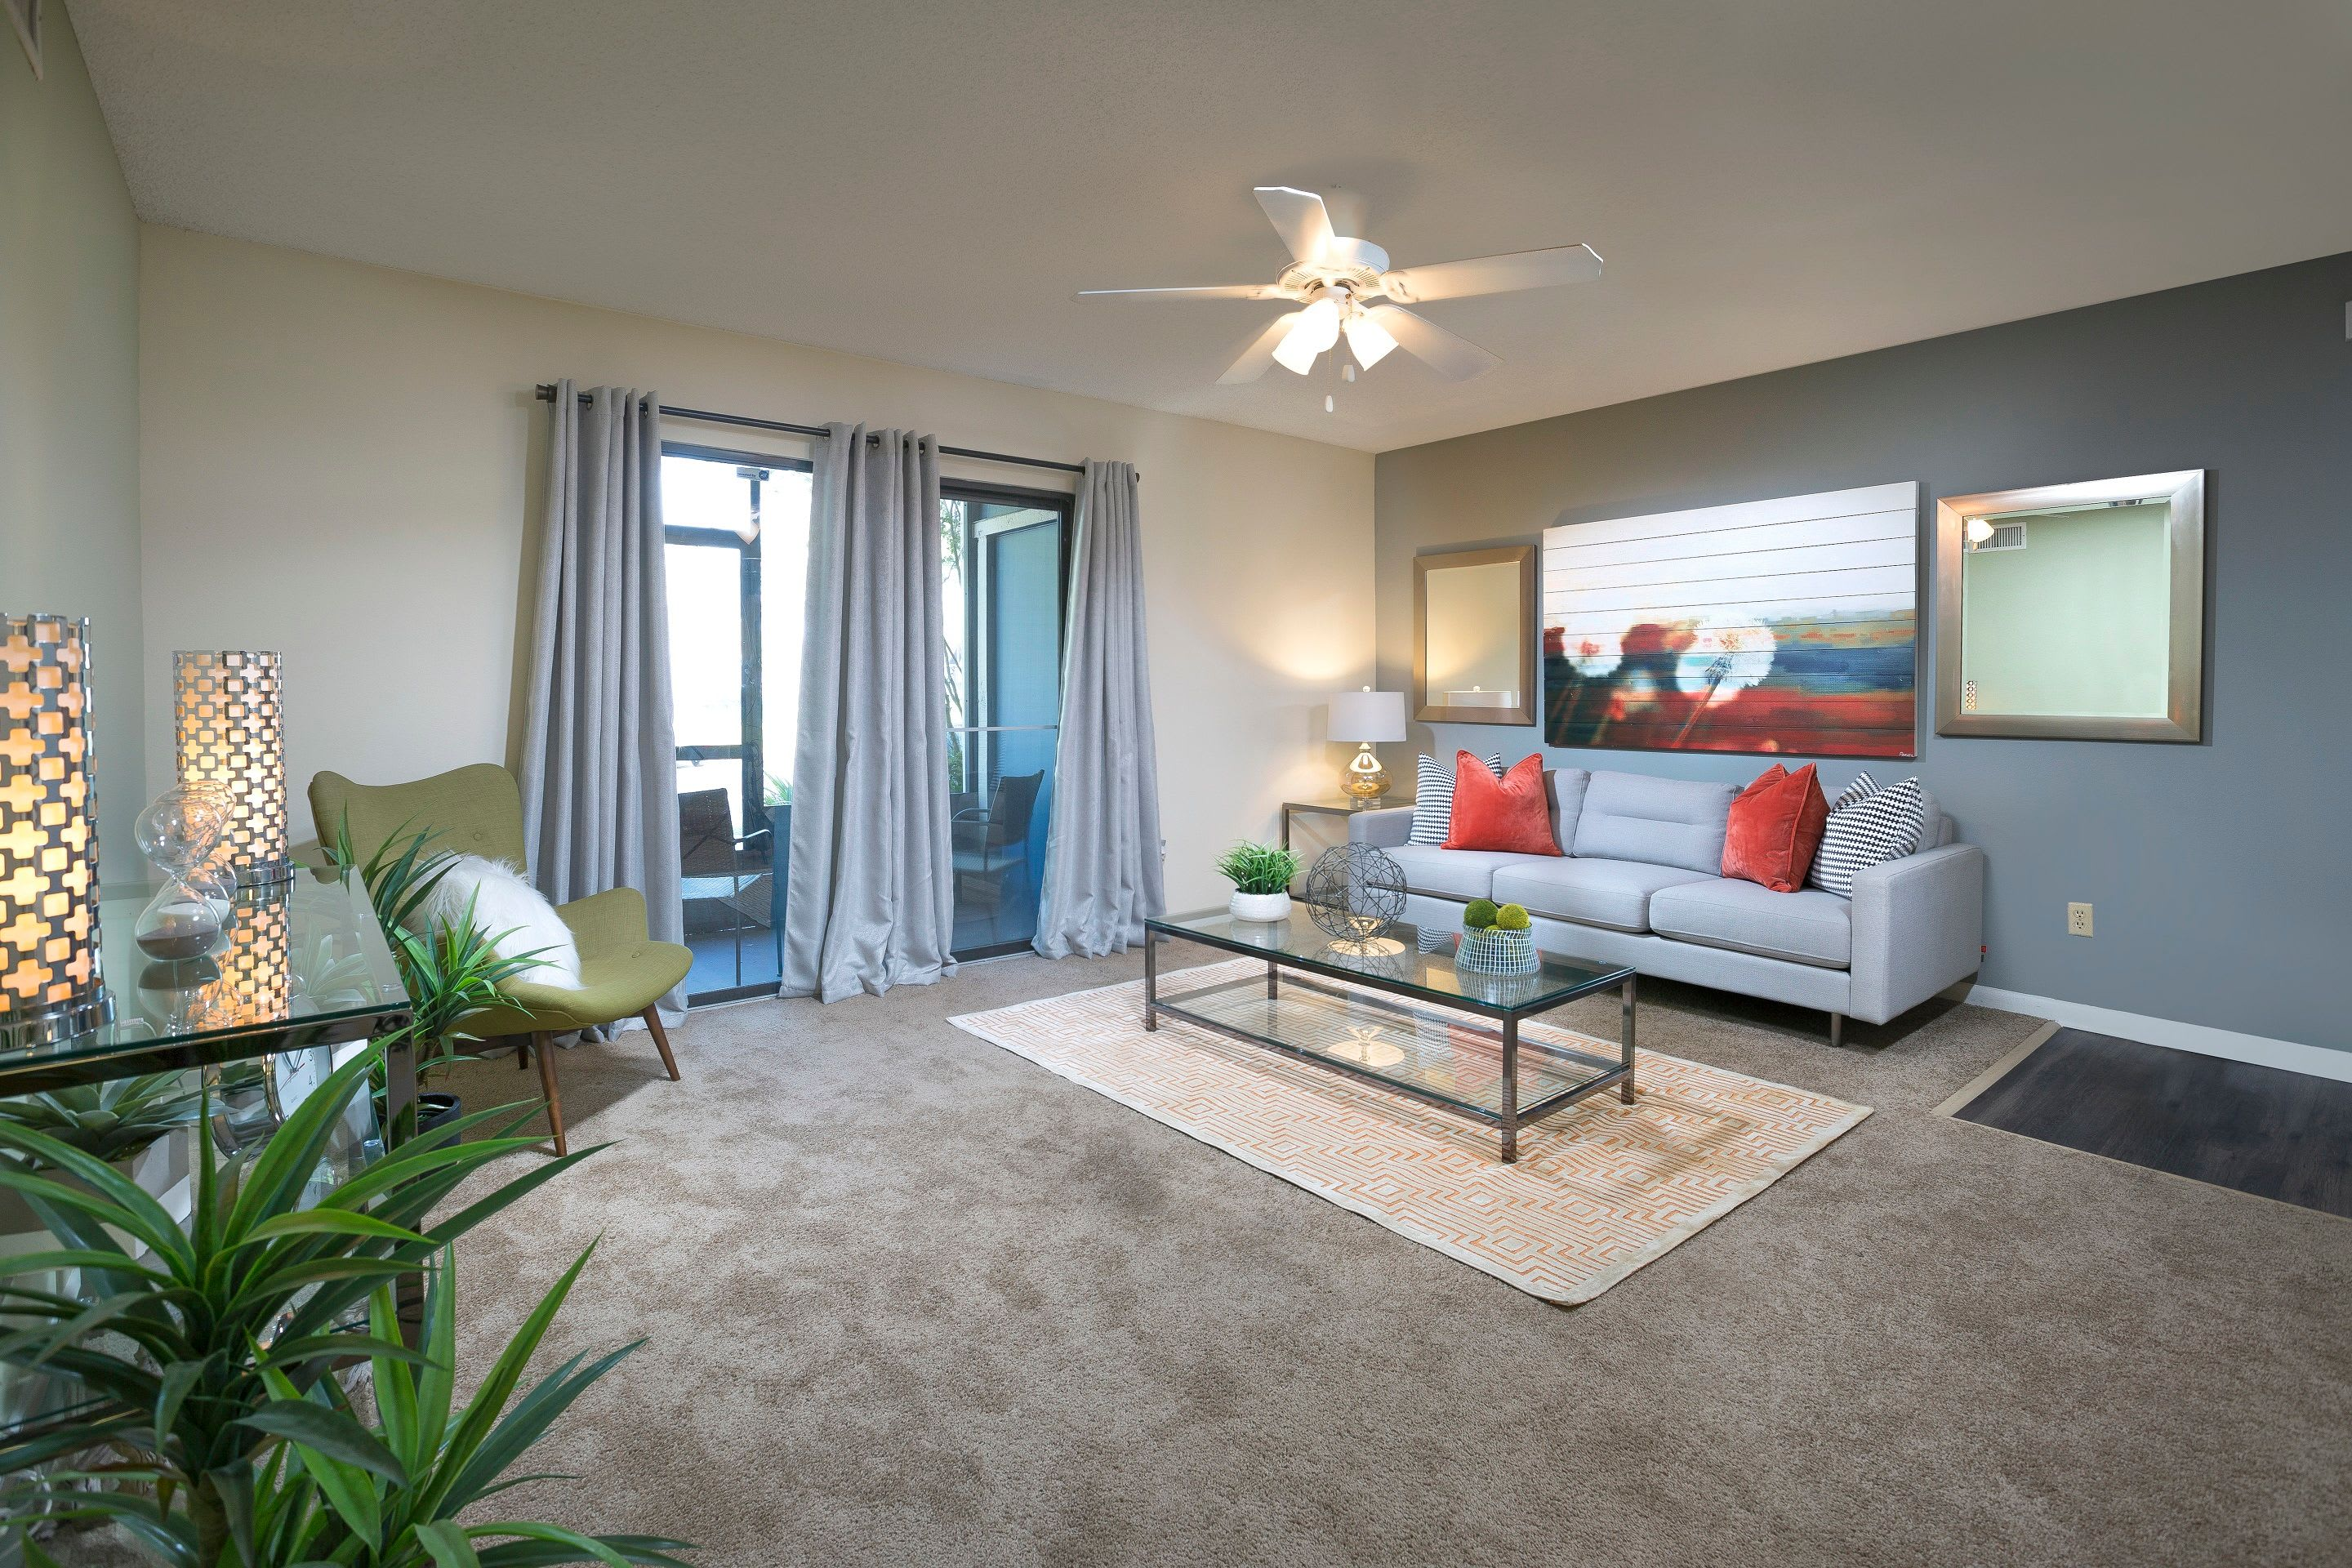 Autumn Cove offers beautiful homes for rent in Orange Park, FL